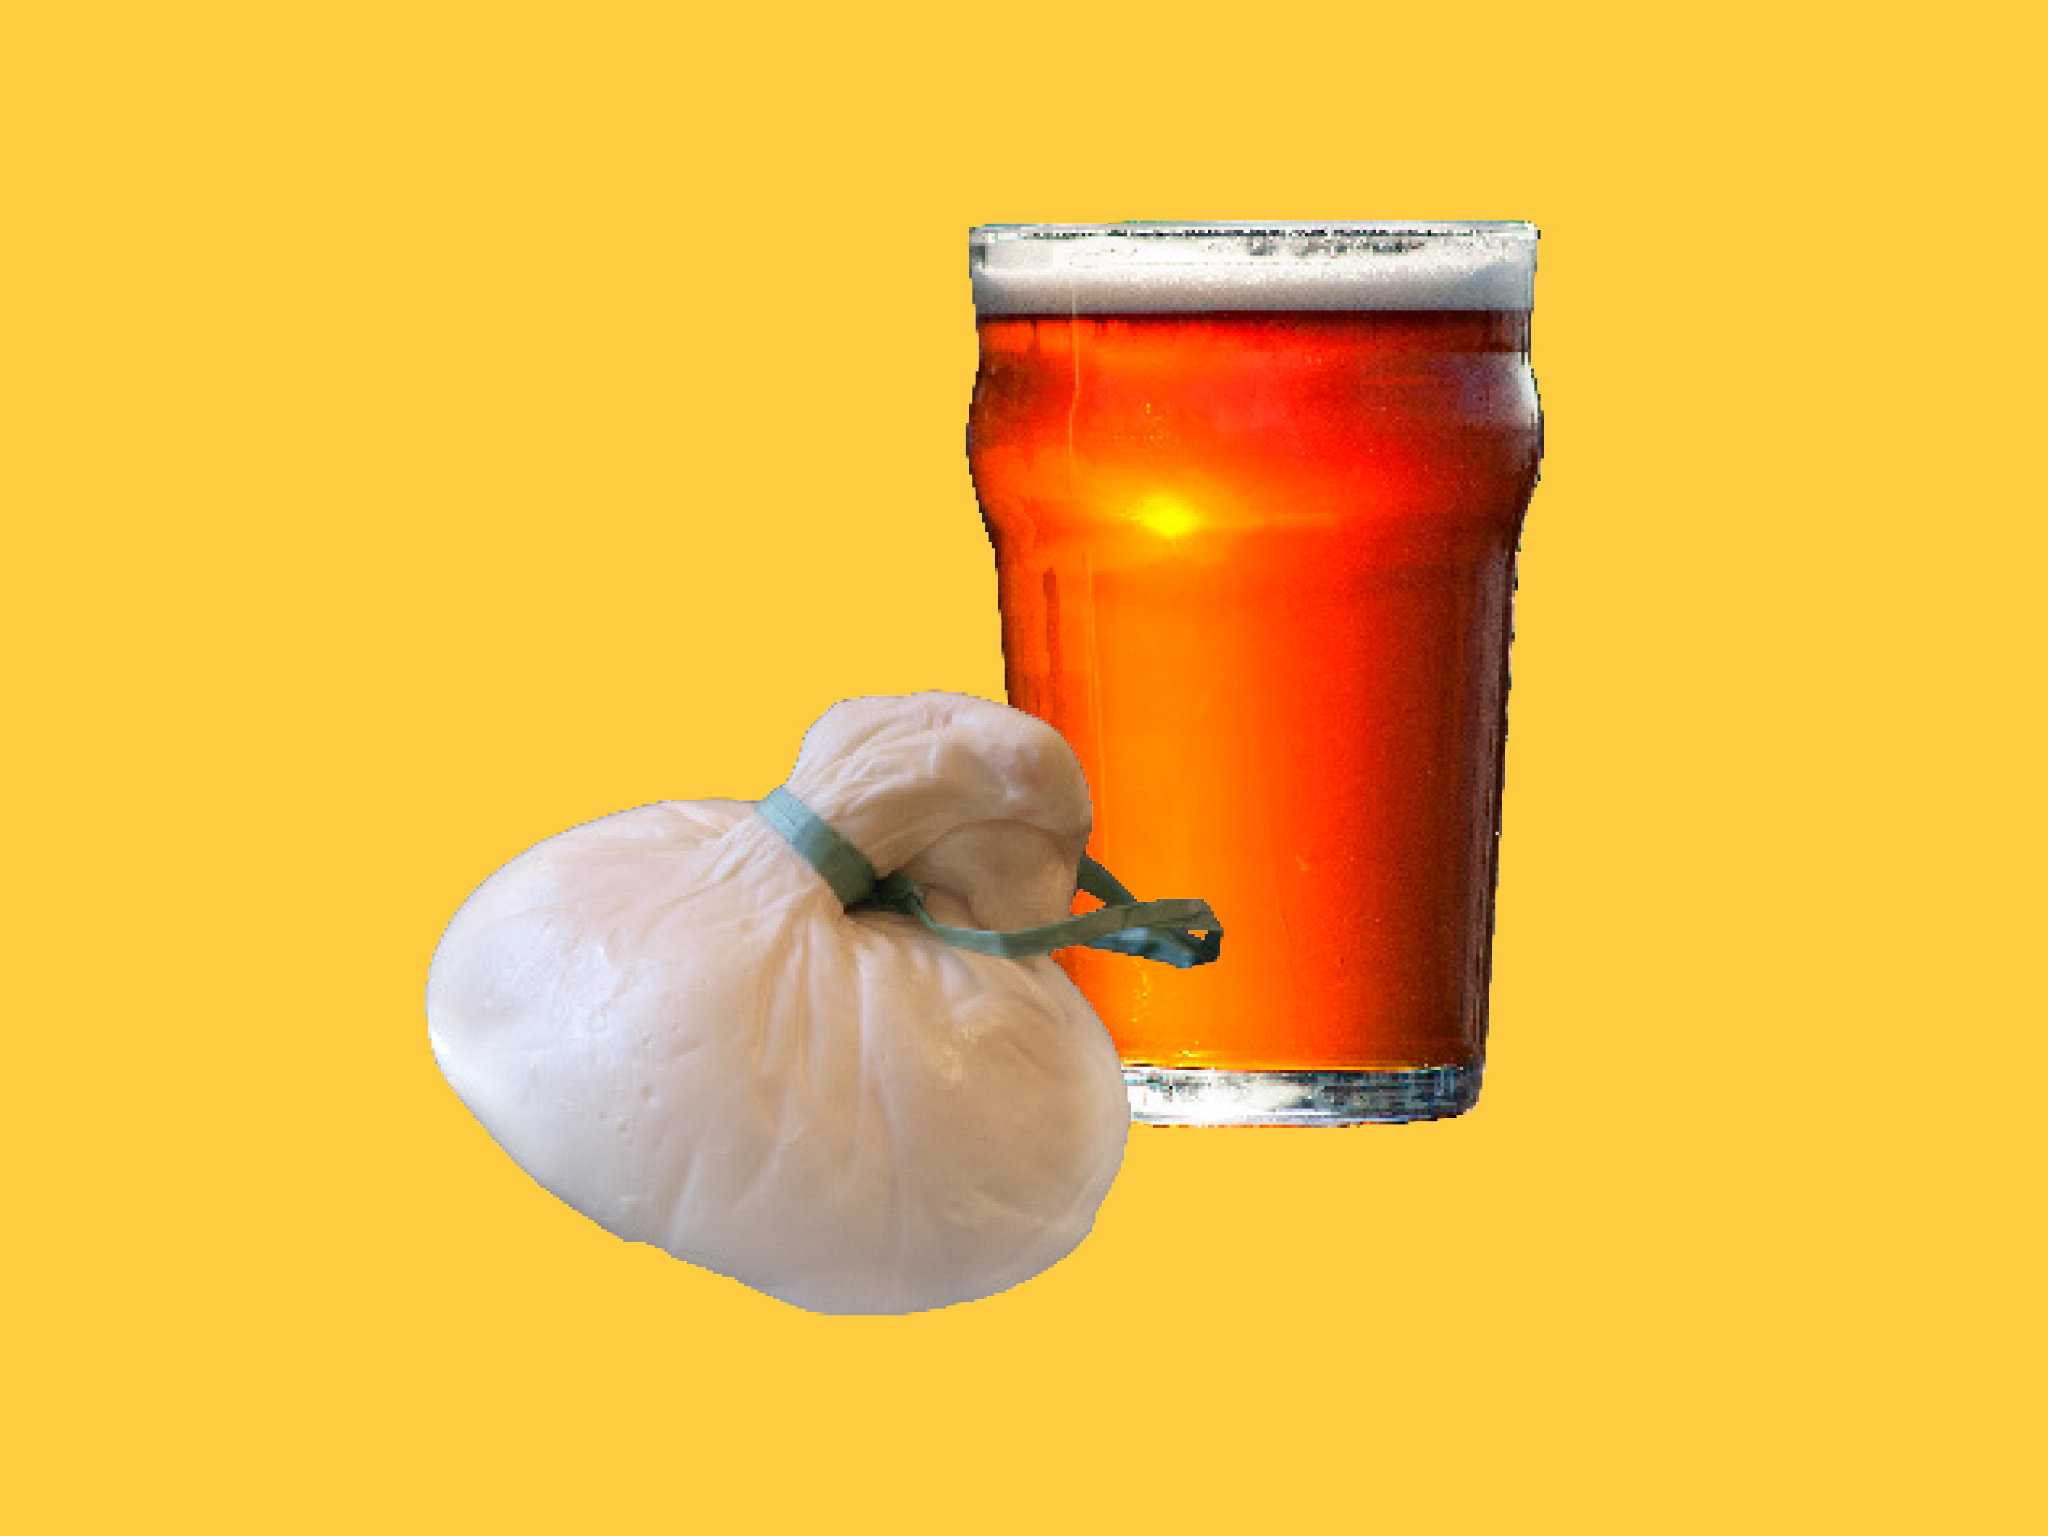 Burrata and pilsner beer